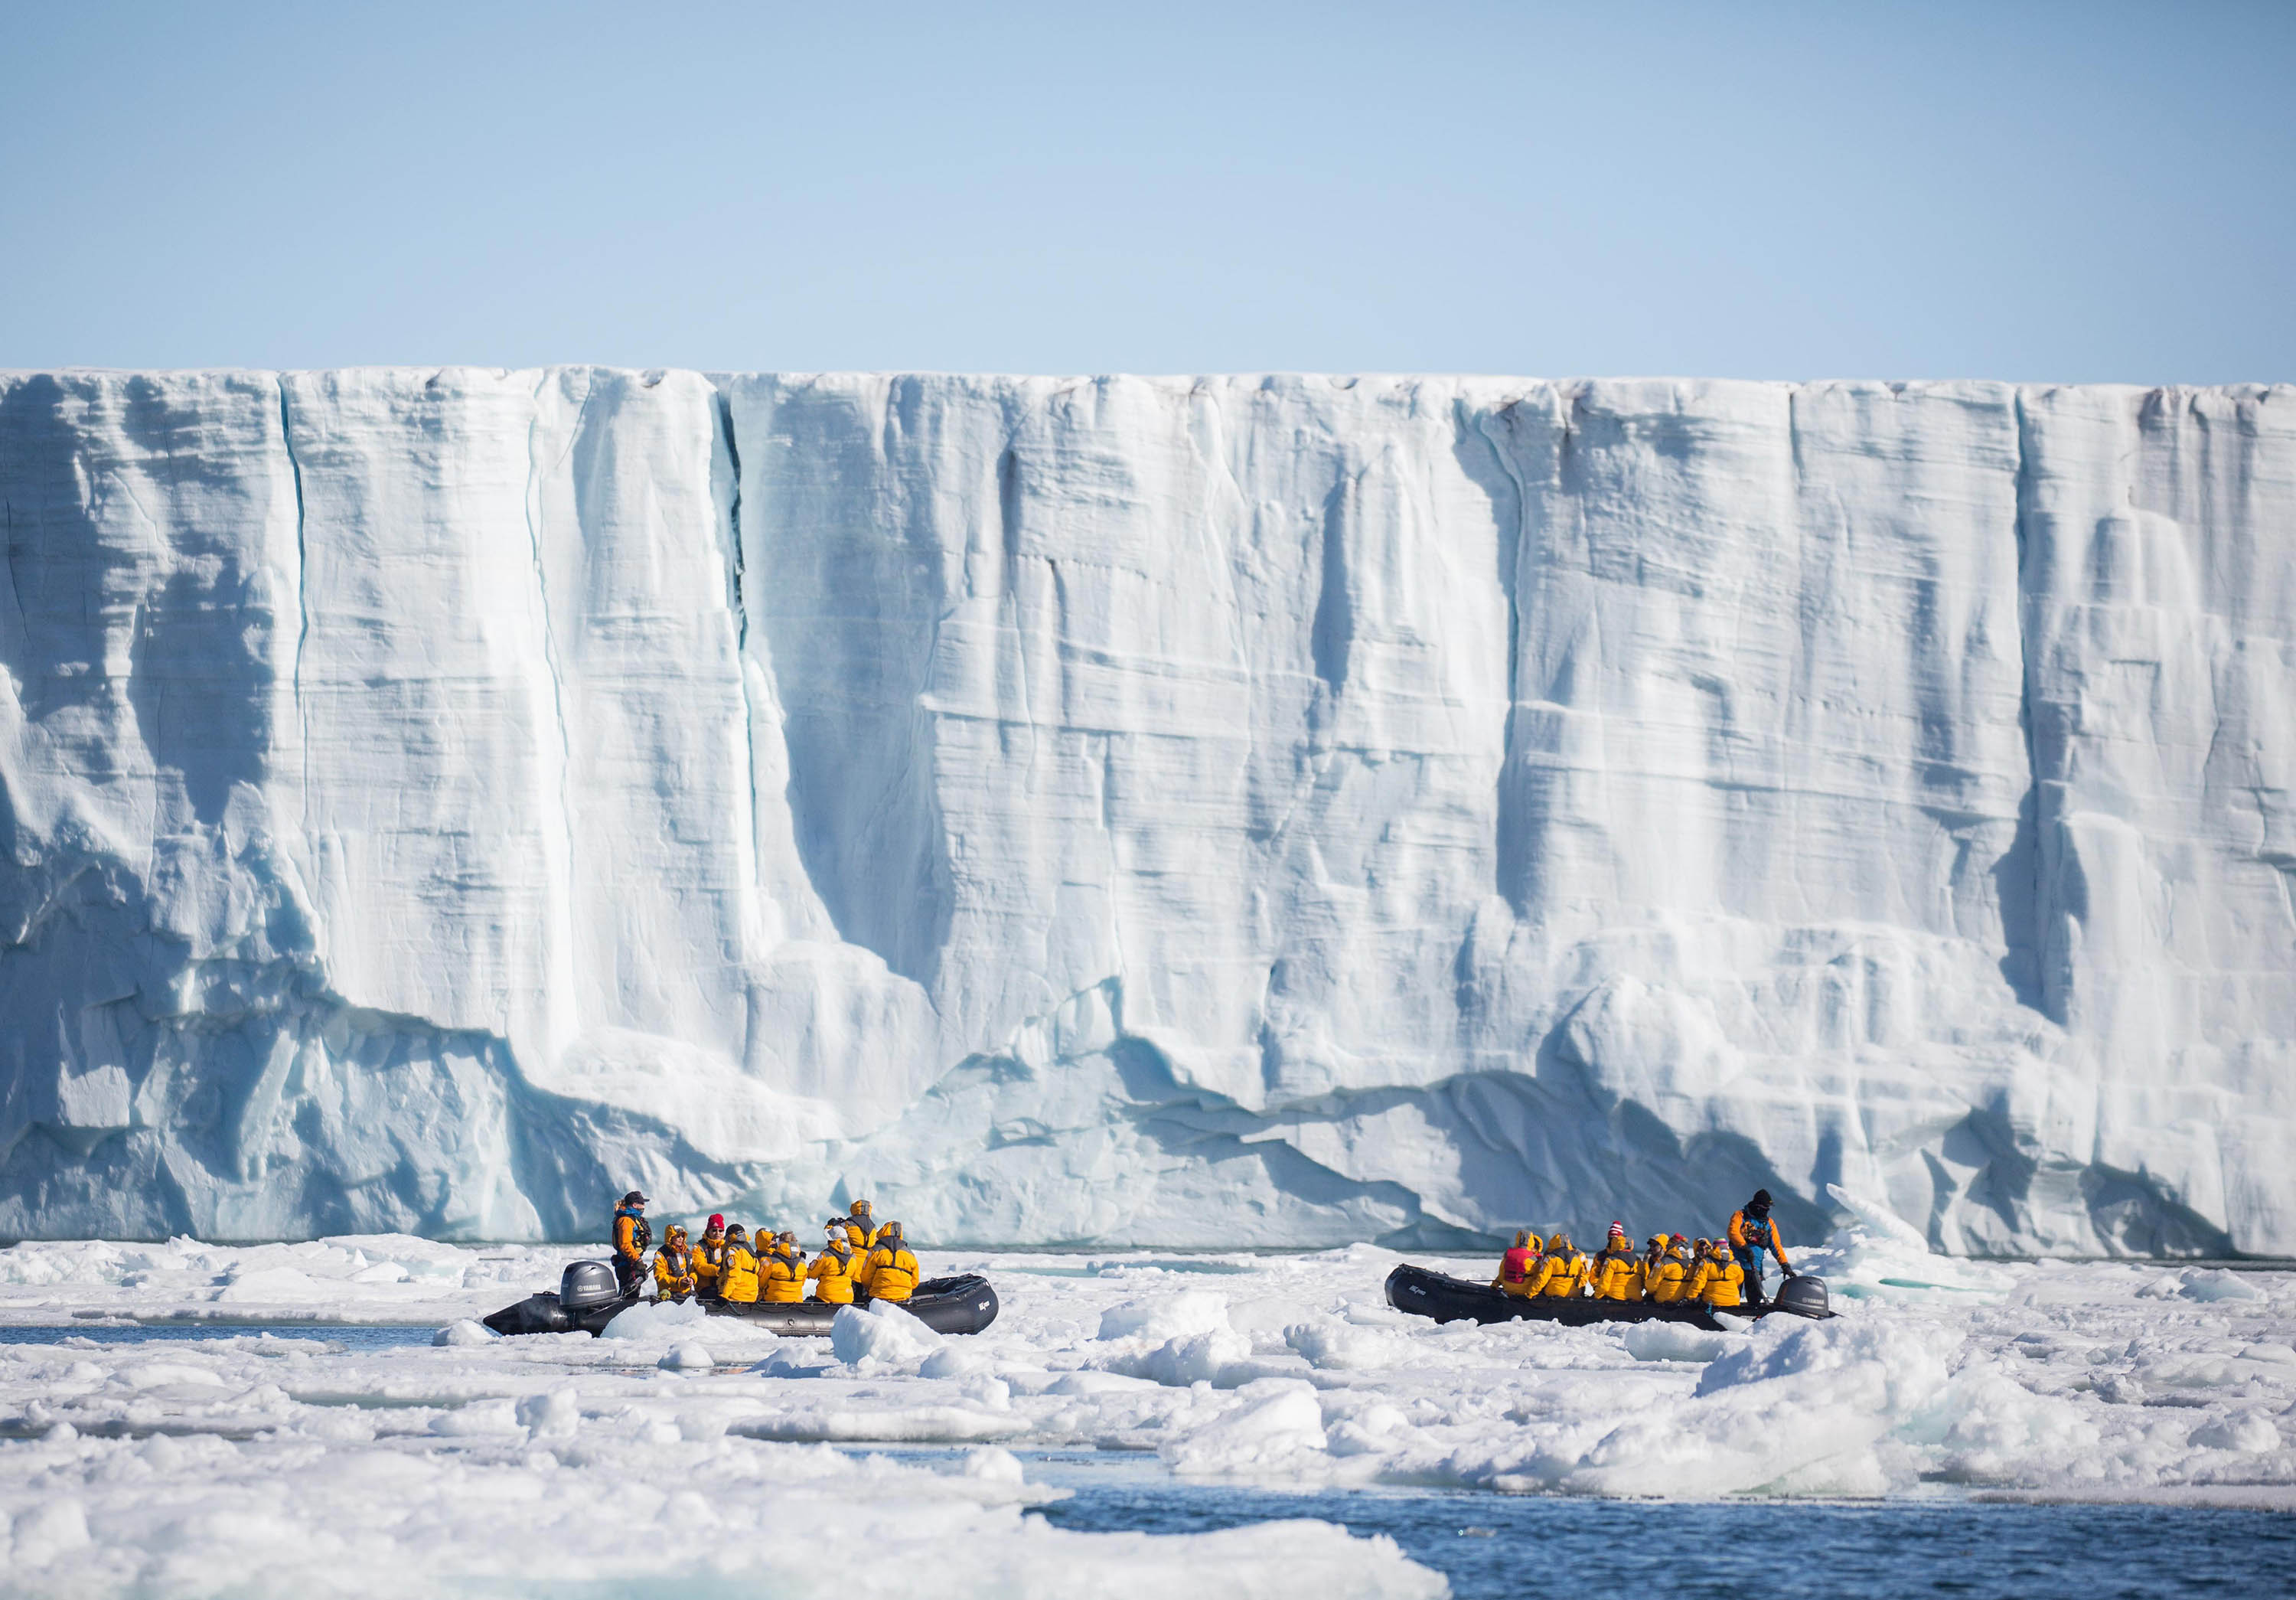 Quark Expeditions guests enjoy a Zodiac cruise in waters of Svalbard